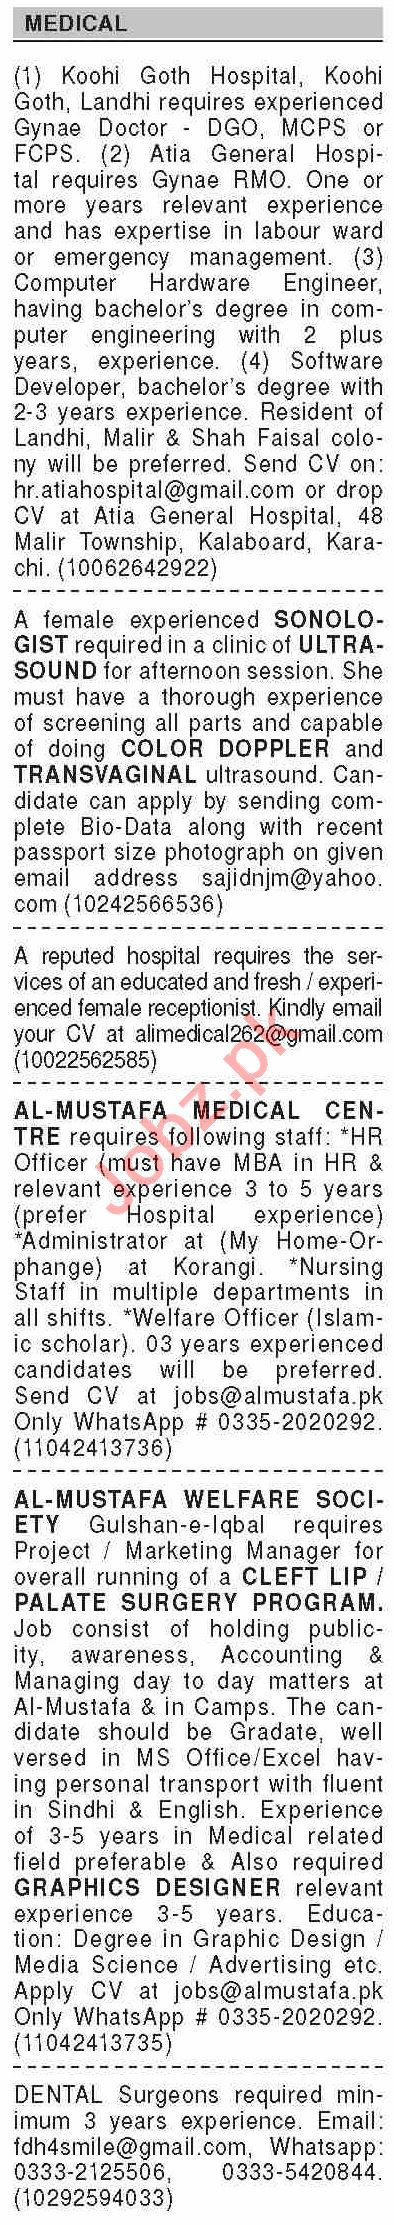 Dawn Sunday Classified Ads 23 Aug 2020 for Medical Staff